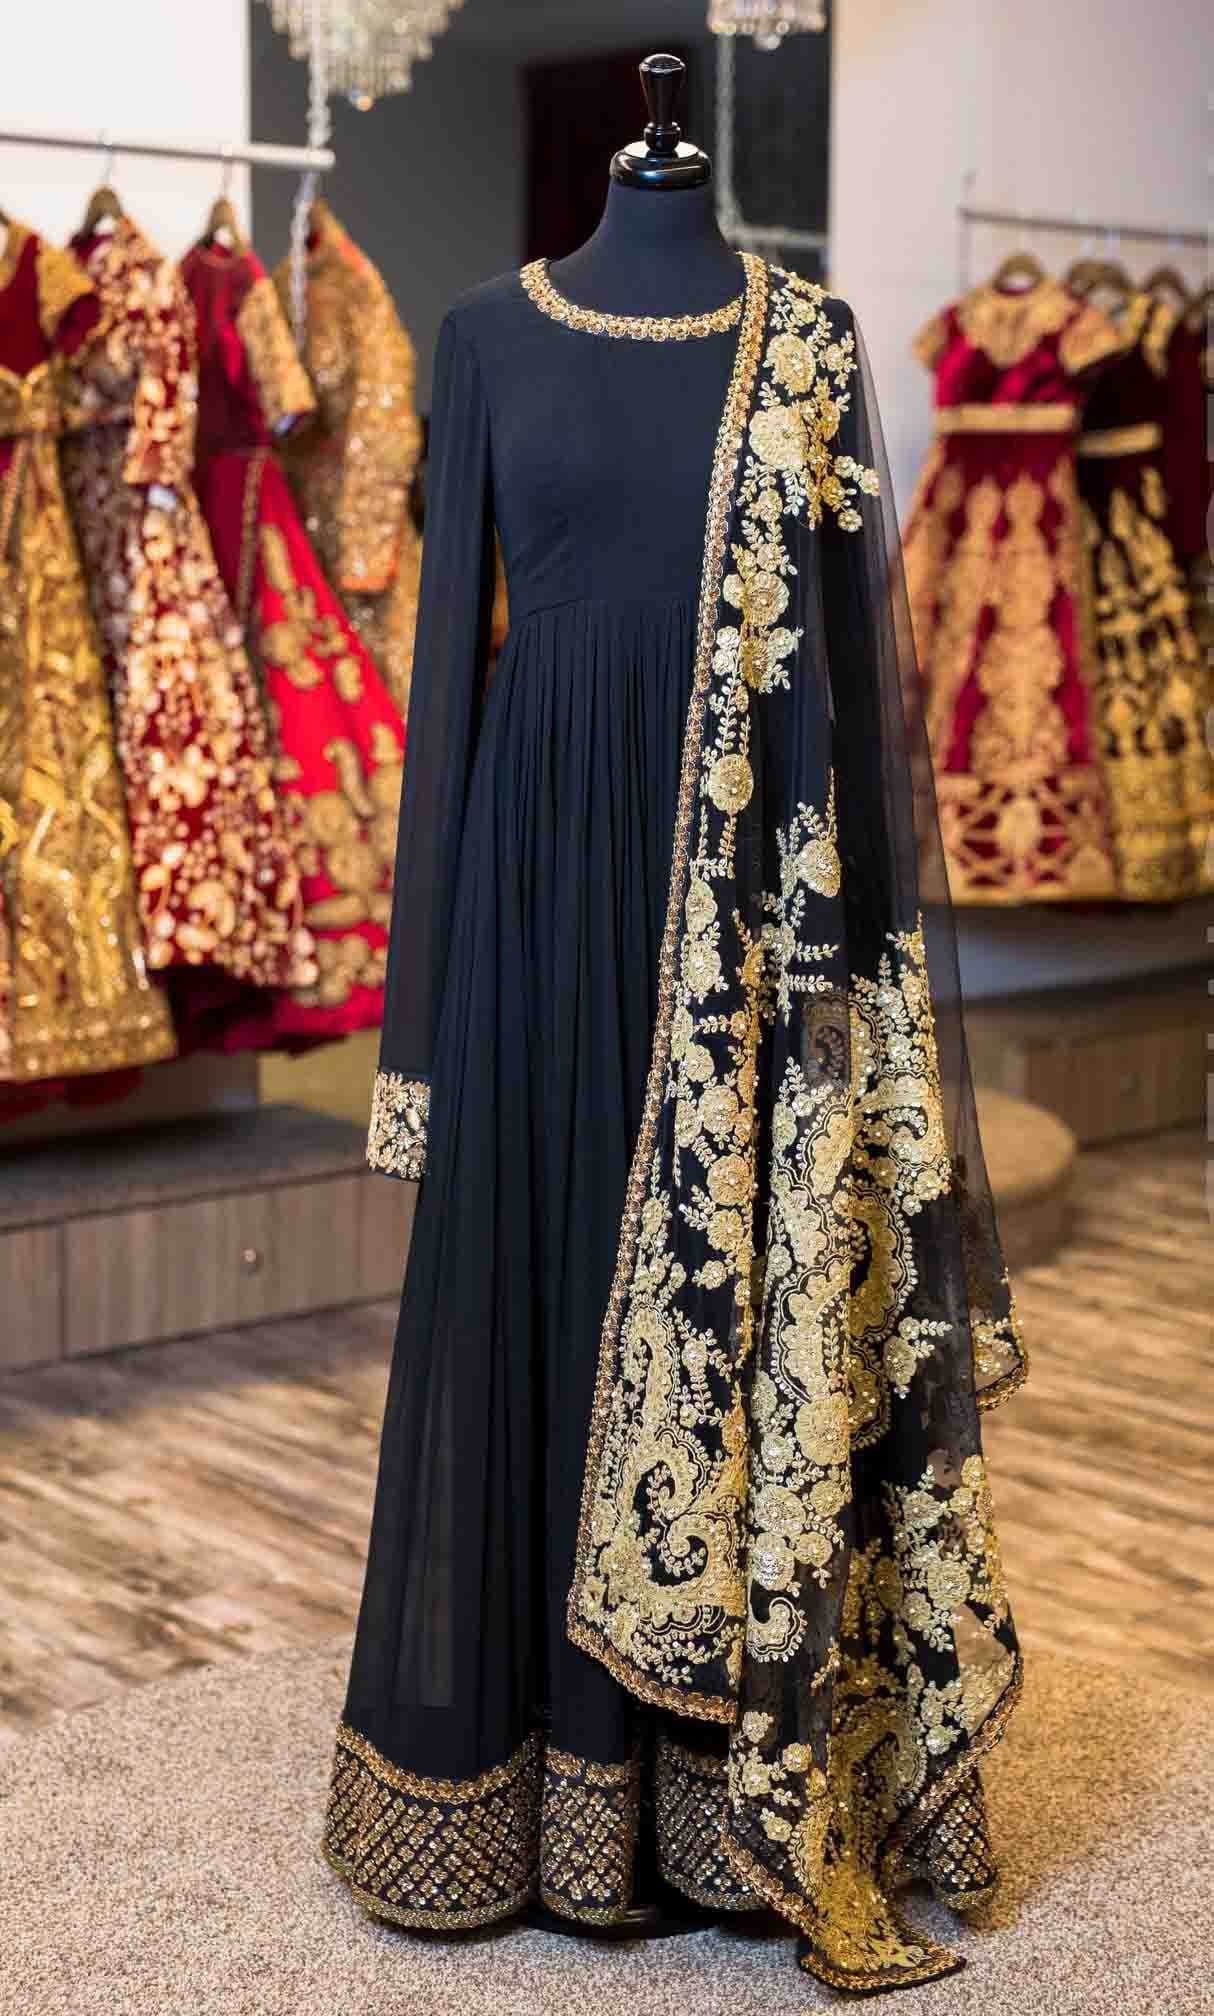 Black georgette floor length anarkali  With cuff, neckline, and border embroidery  Paired with black net dupatta, which is fully embroidered